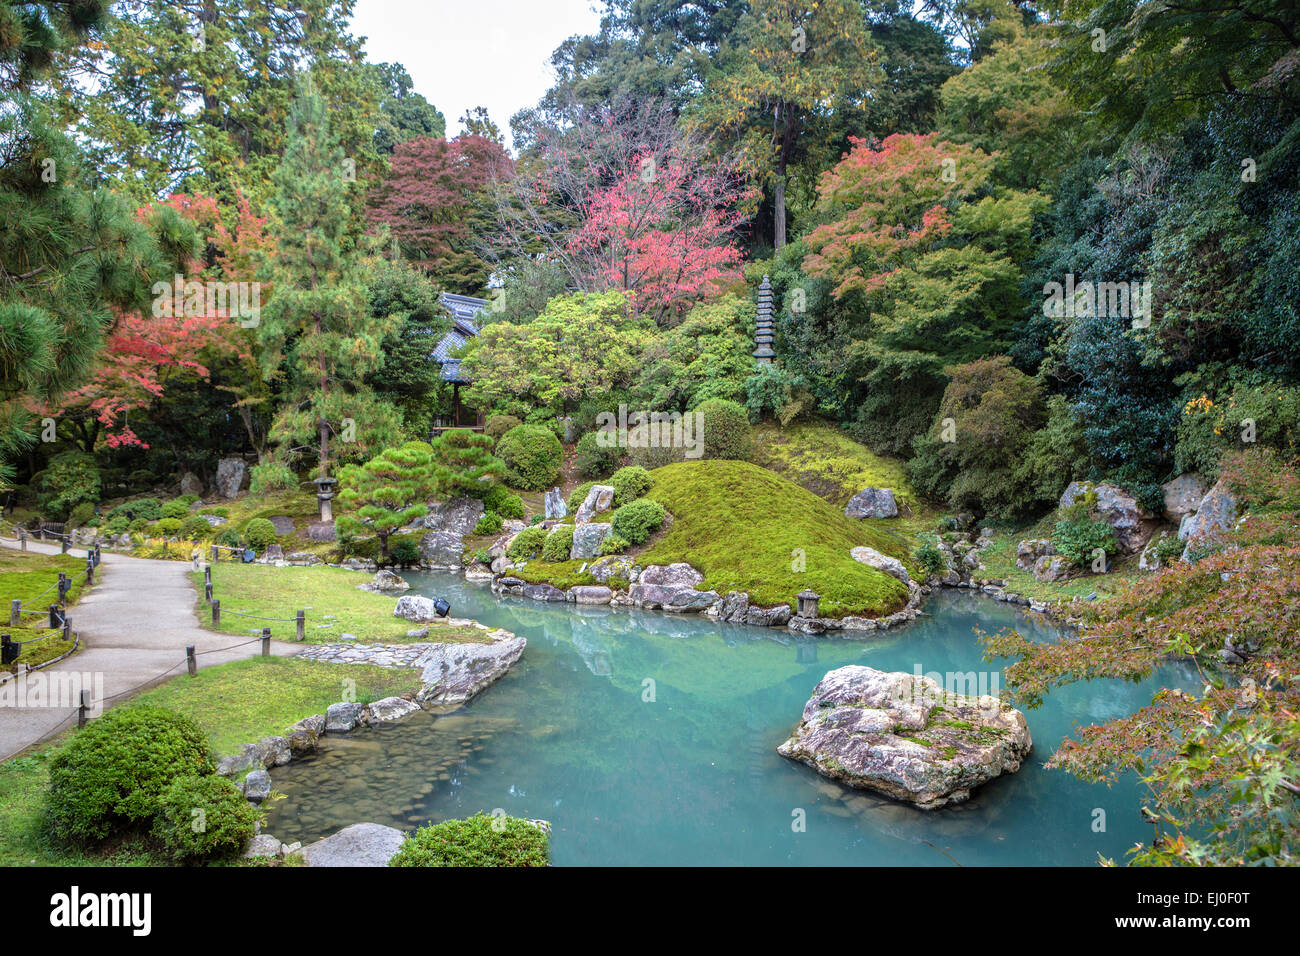 Japan, Asia, Kansai, Kyoto, Japanese, Landscape, Shoren In, Temple,  Architecture, Colourful, Cute, Fall, Garden, Green, Momiji, N